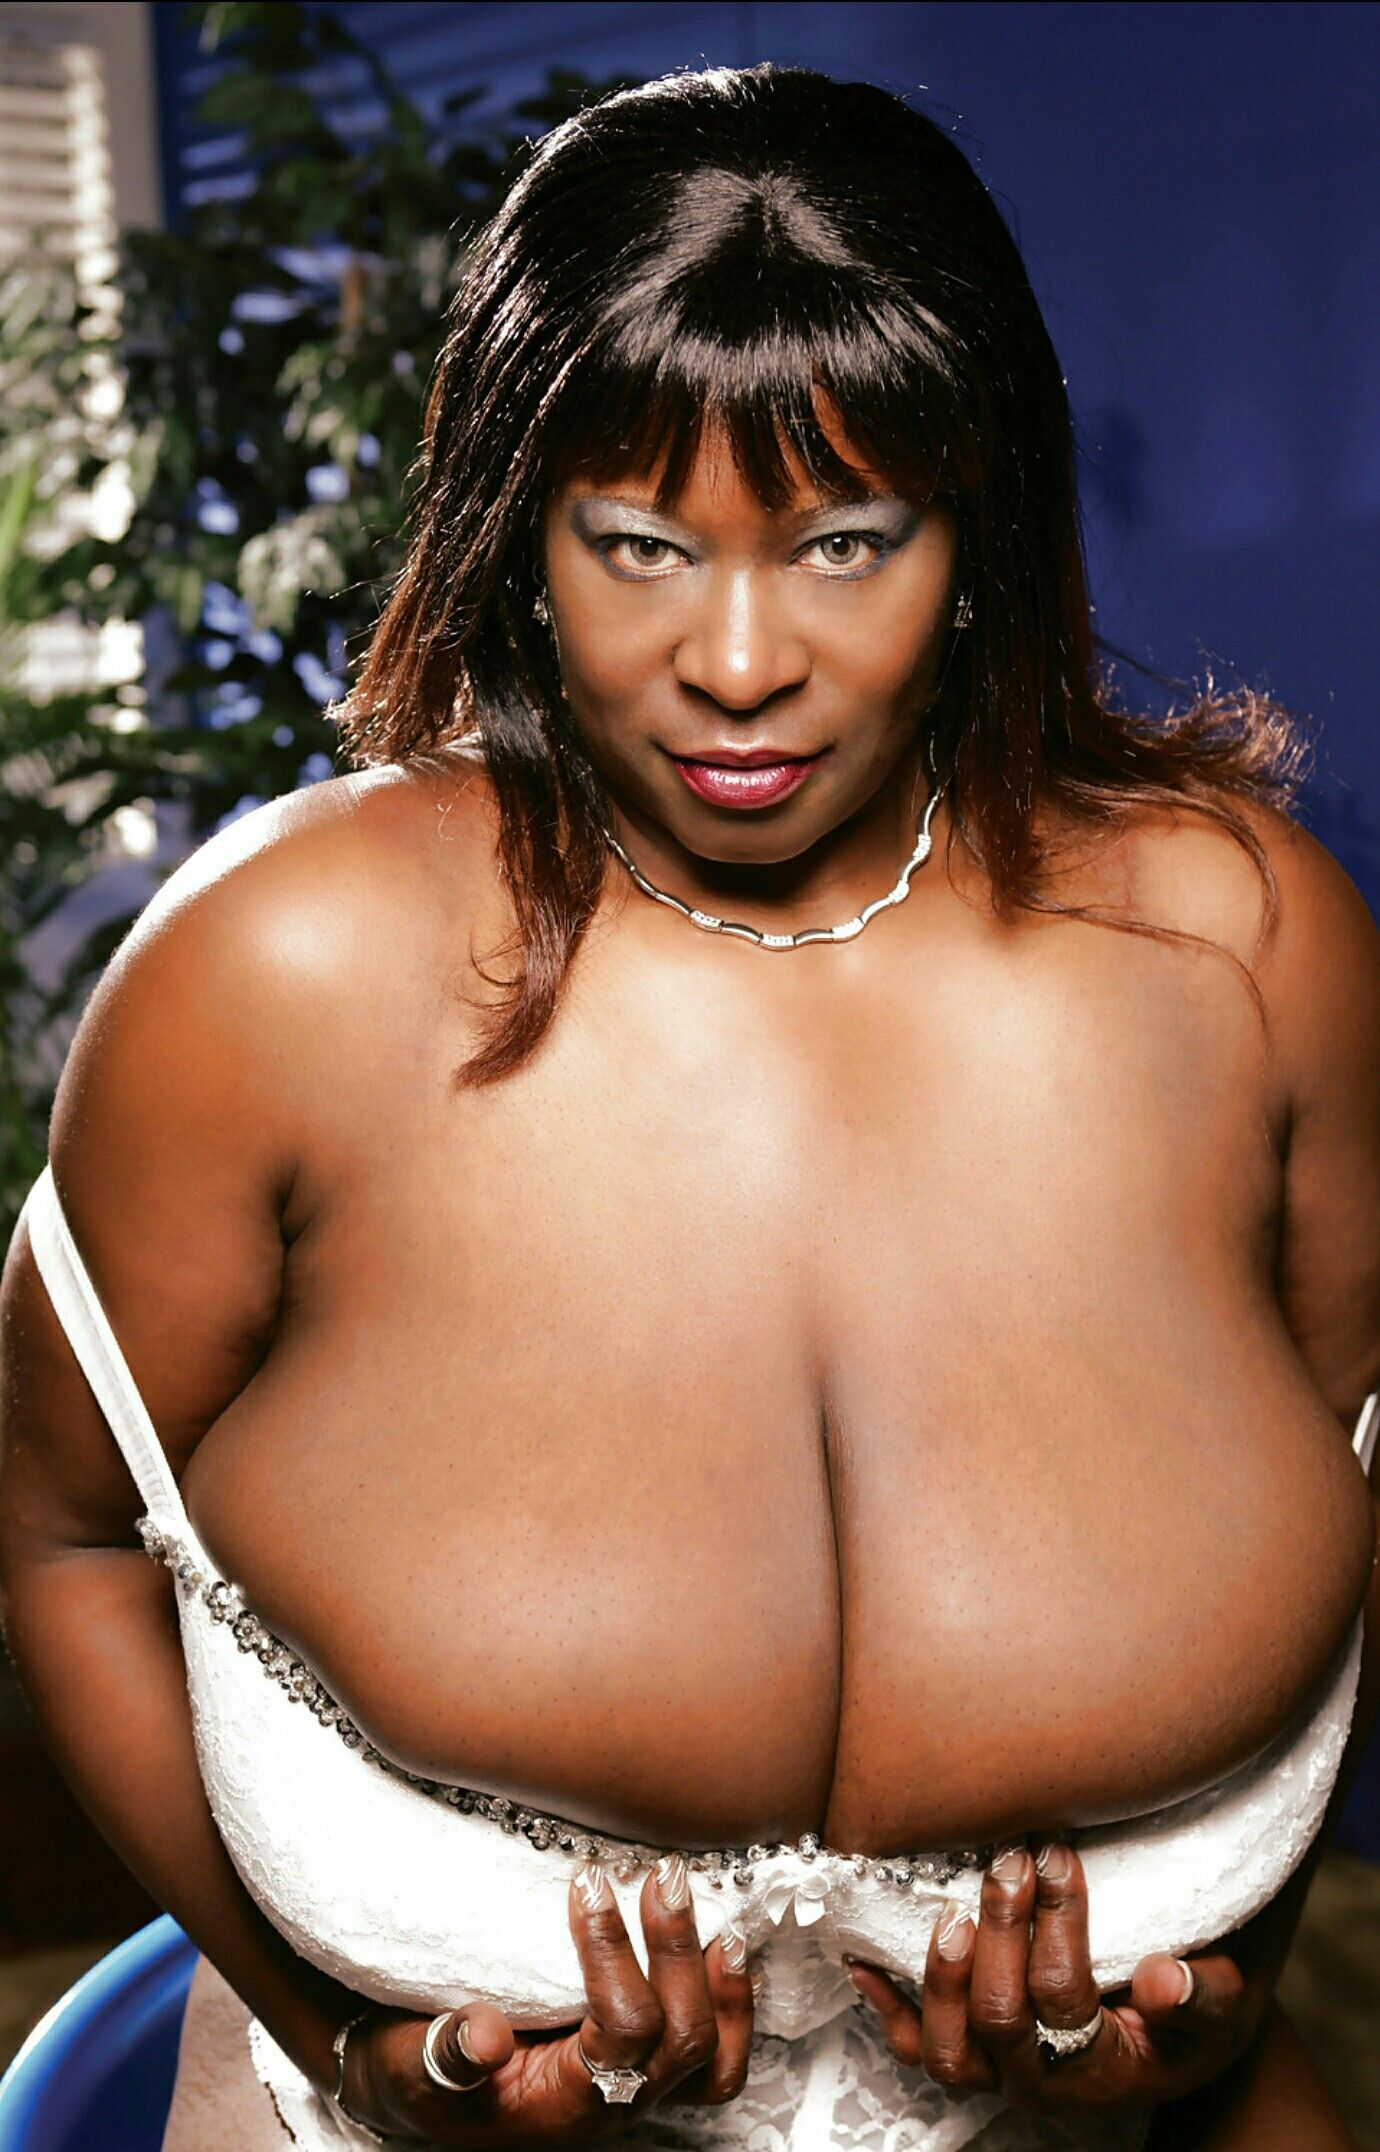 black-women-and-big-boobs-sex-hick-girl